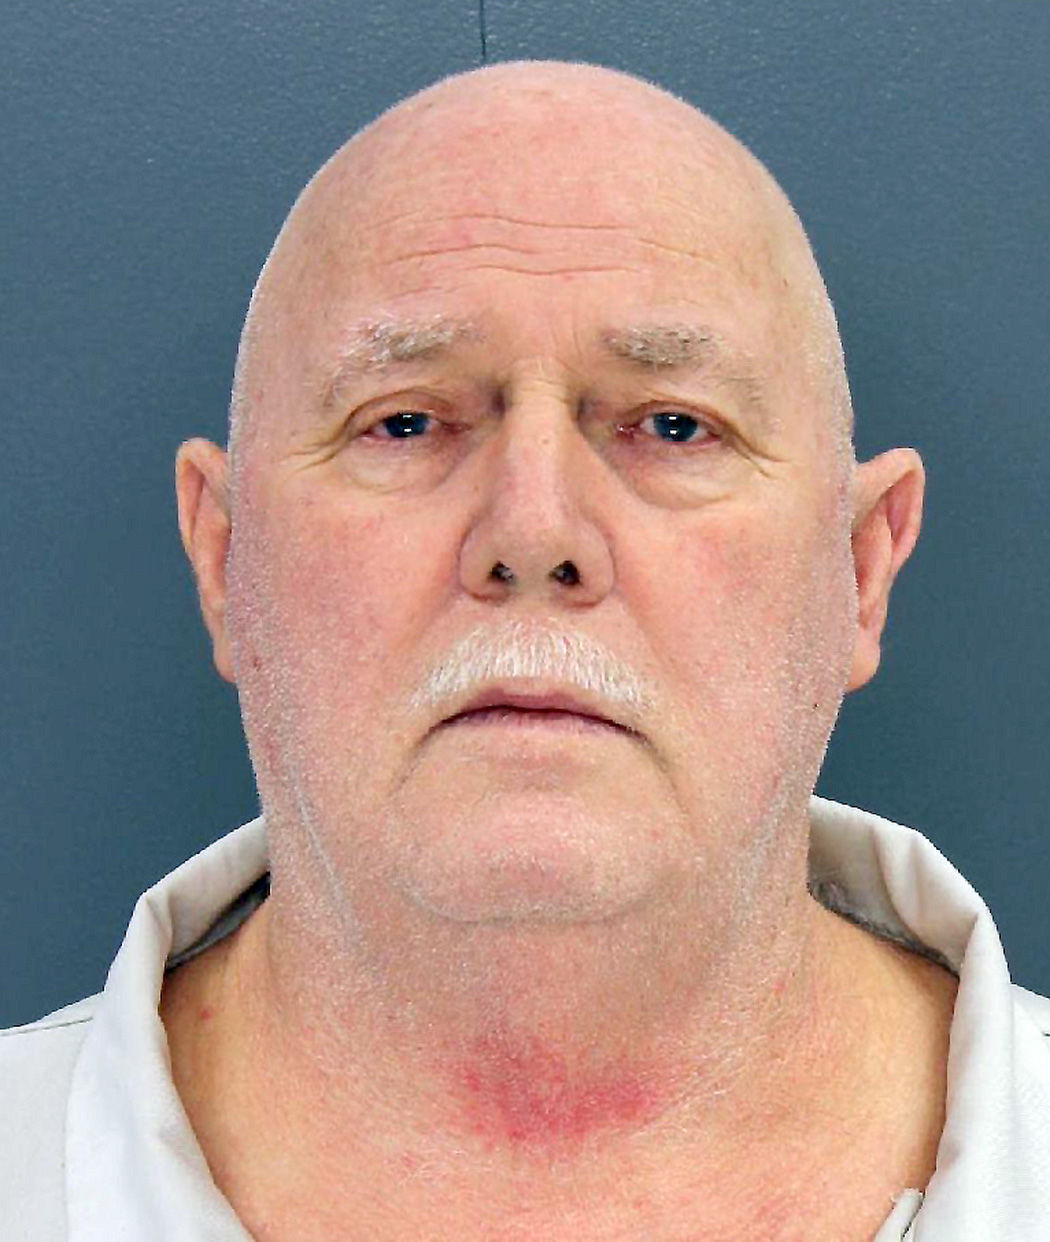 man who molested 8 year old boy gets 10 years in prison news